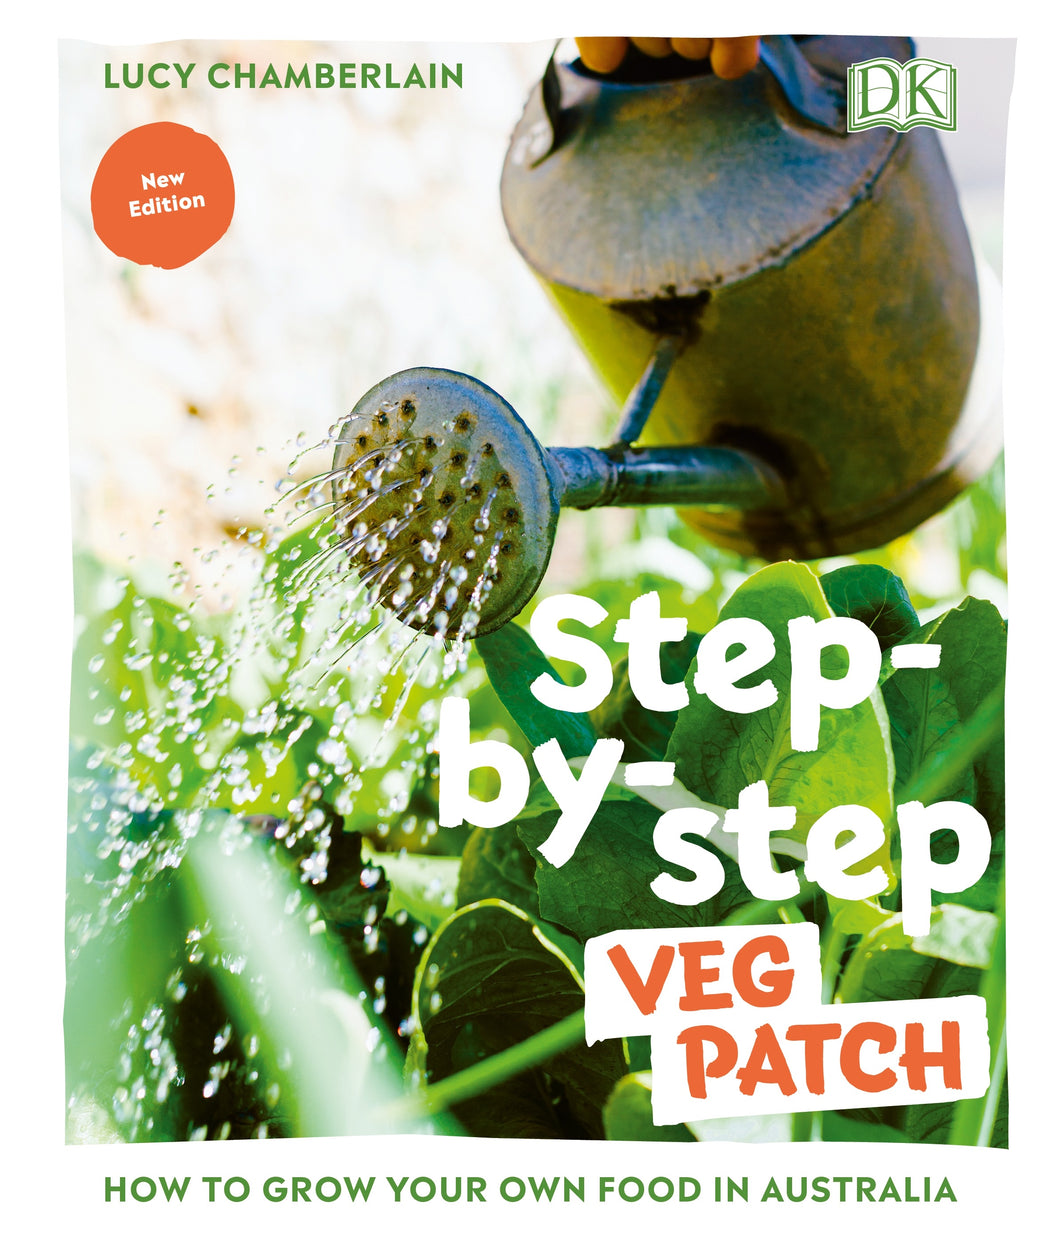 Step-by-step Veg Patch by Lucy Chamberlain